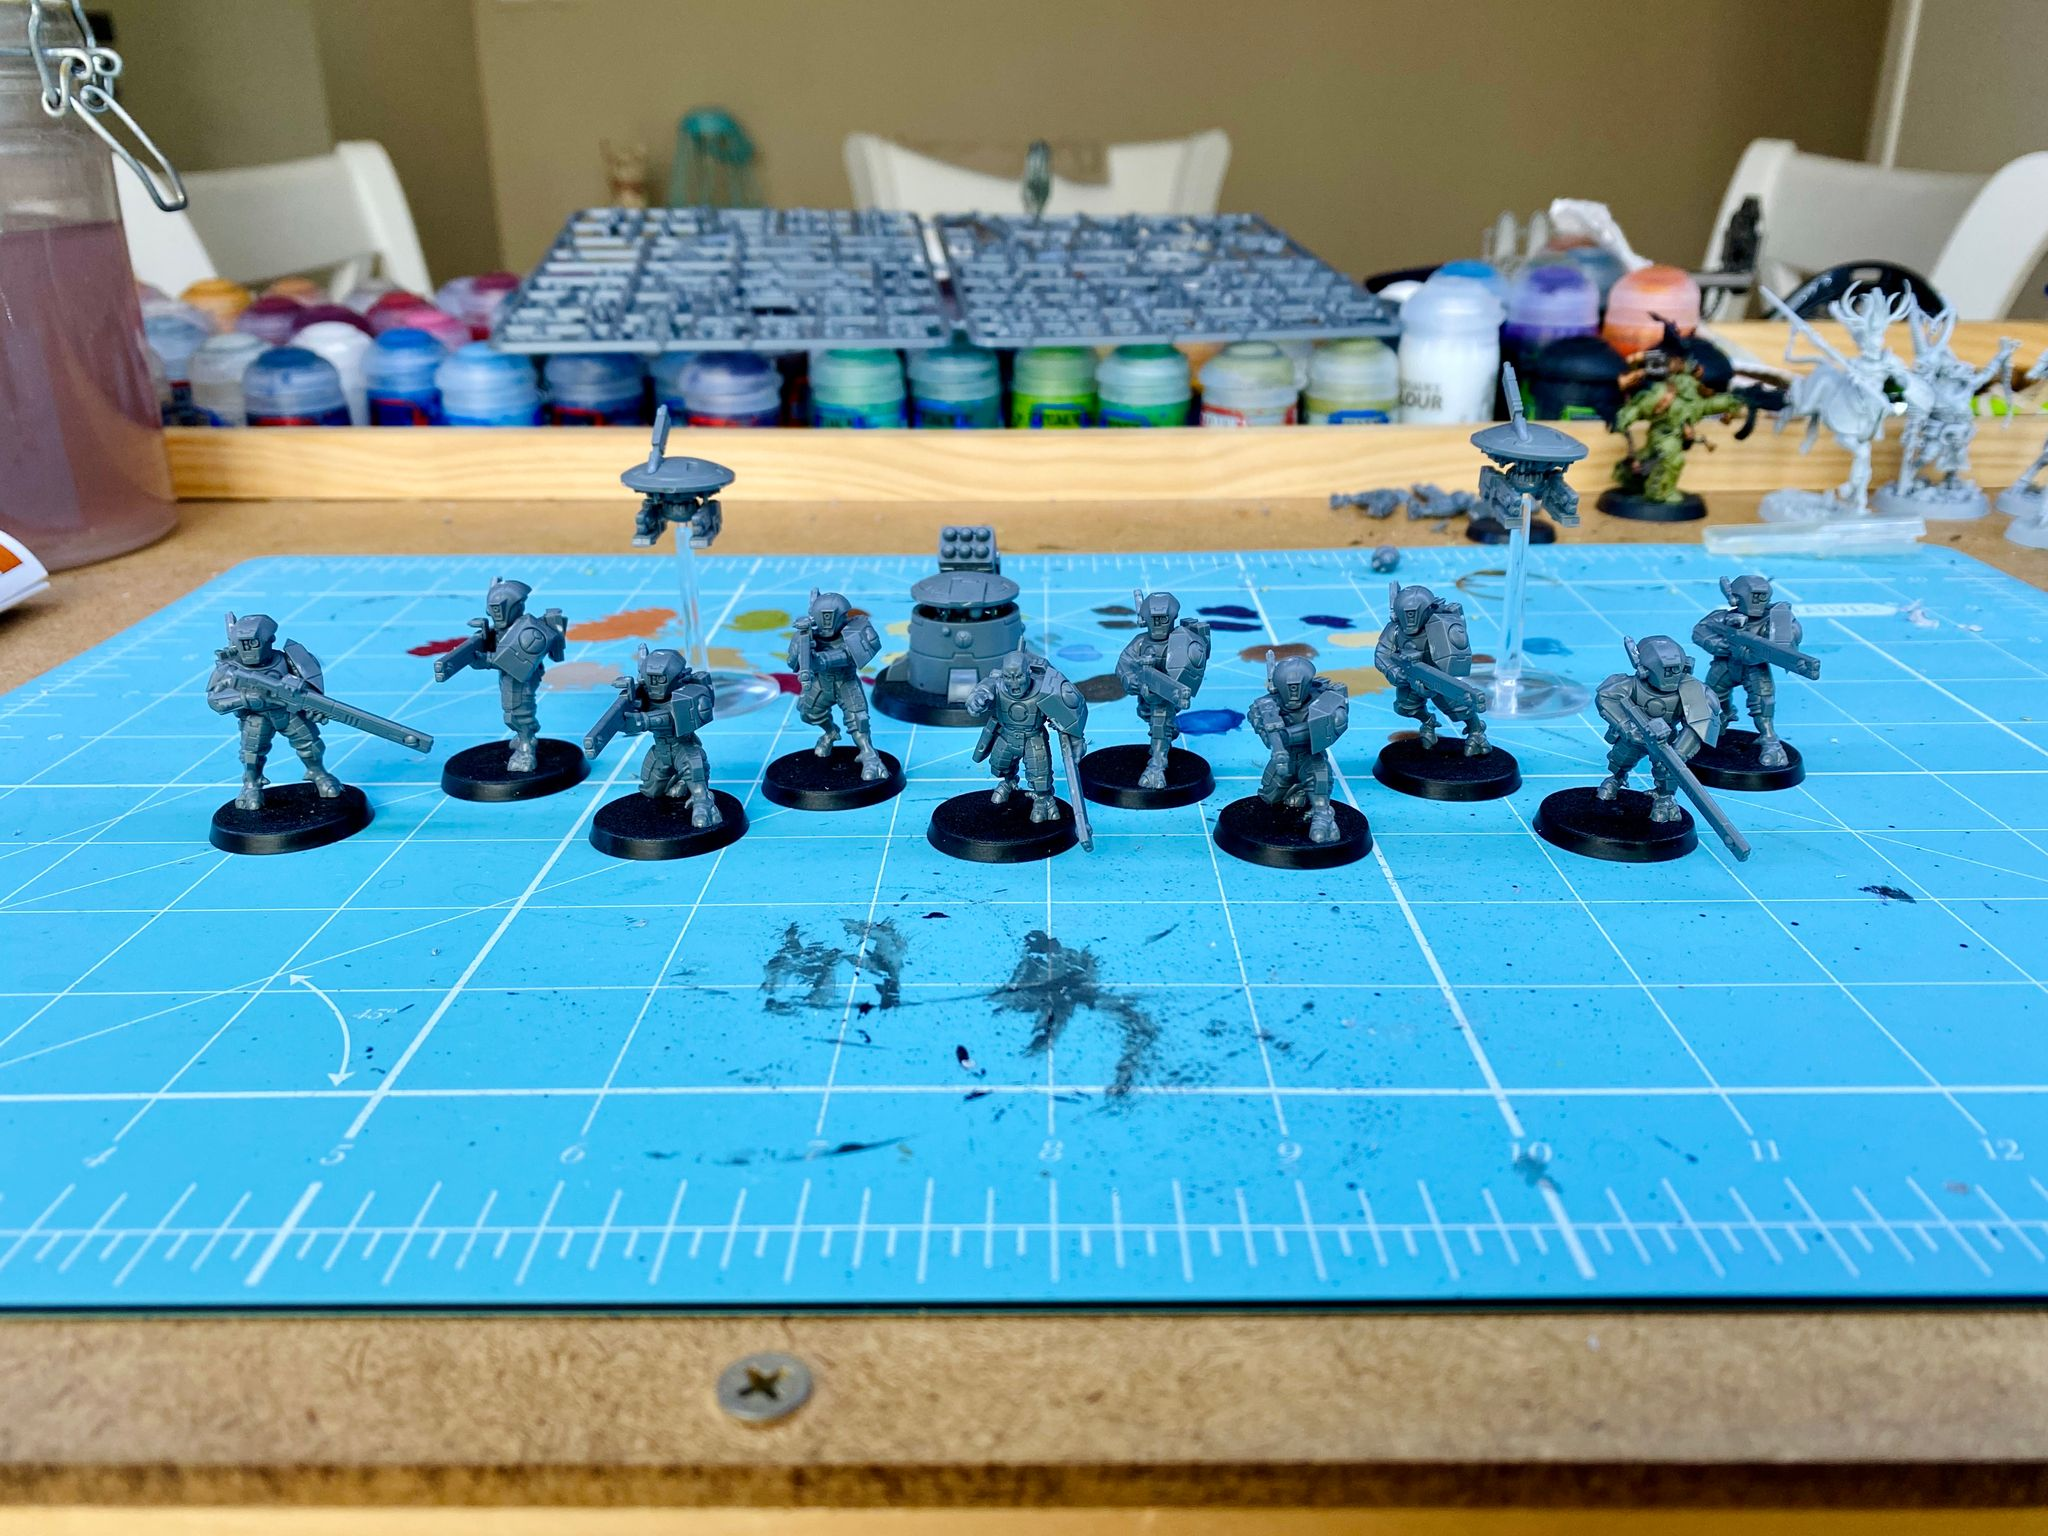 A photo of a squad of Tau from Warhammer 40,000 Kill Team. Nine Fire Warriors, one Fire Warrior sergeant, two drones, and a tactical support turret. They're all unpainted, just grey plastic.